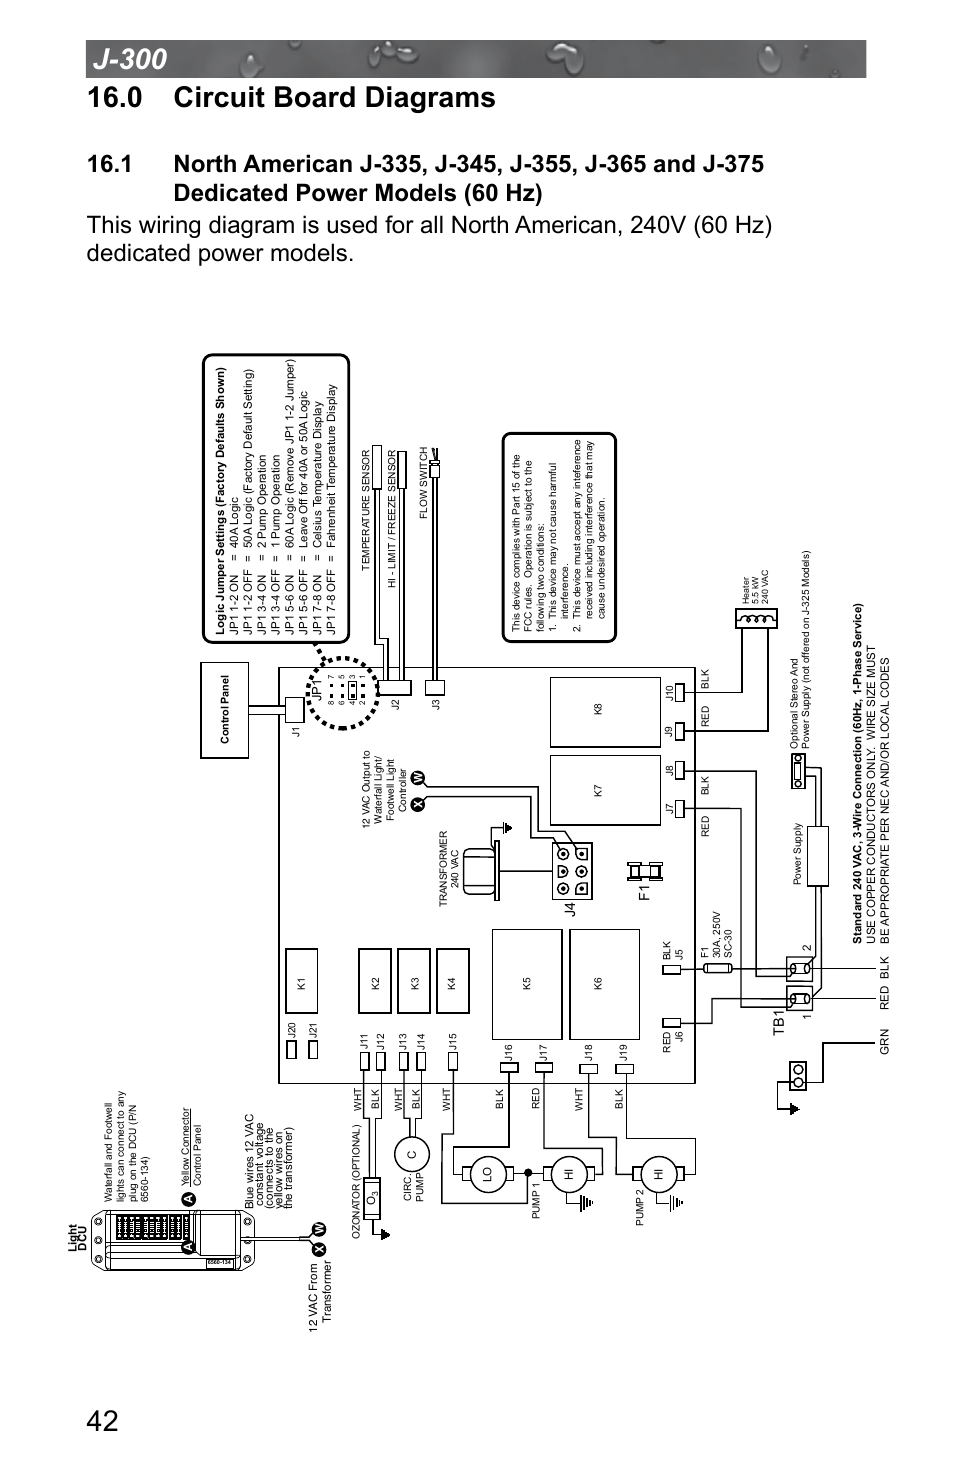 jacuzzi j 315 page46 0 circuit board diagrams, dedicated power models (60 hz) jacuzzi jacuzzi j 345 wiring diagram at alyssarenee.co